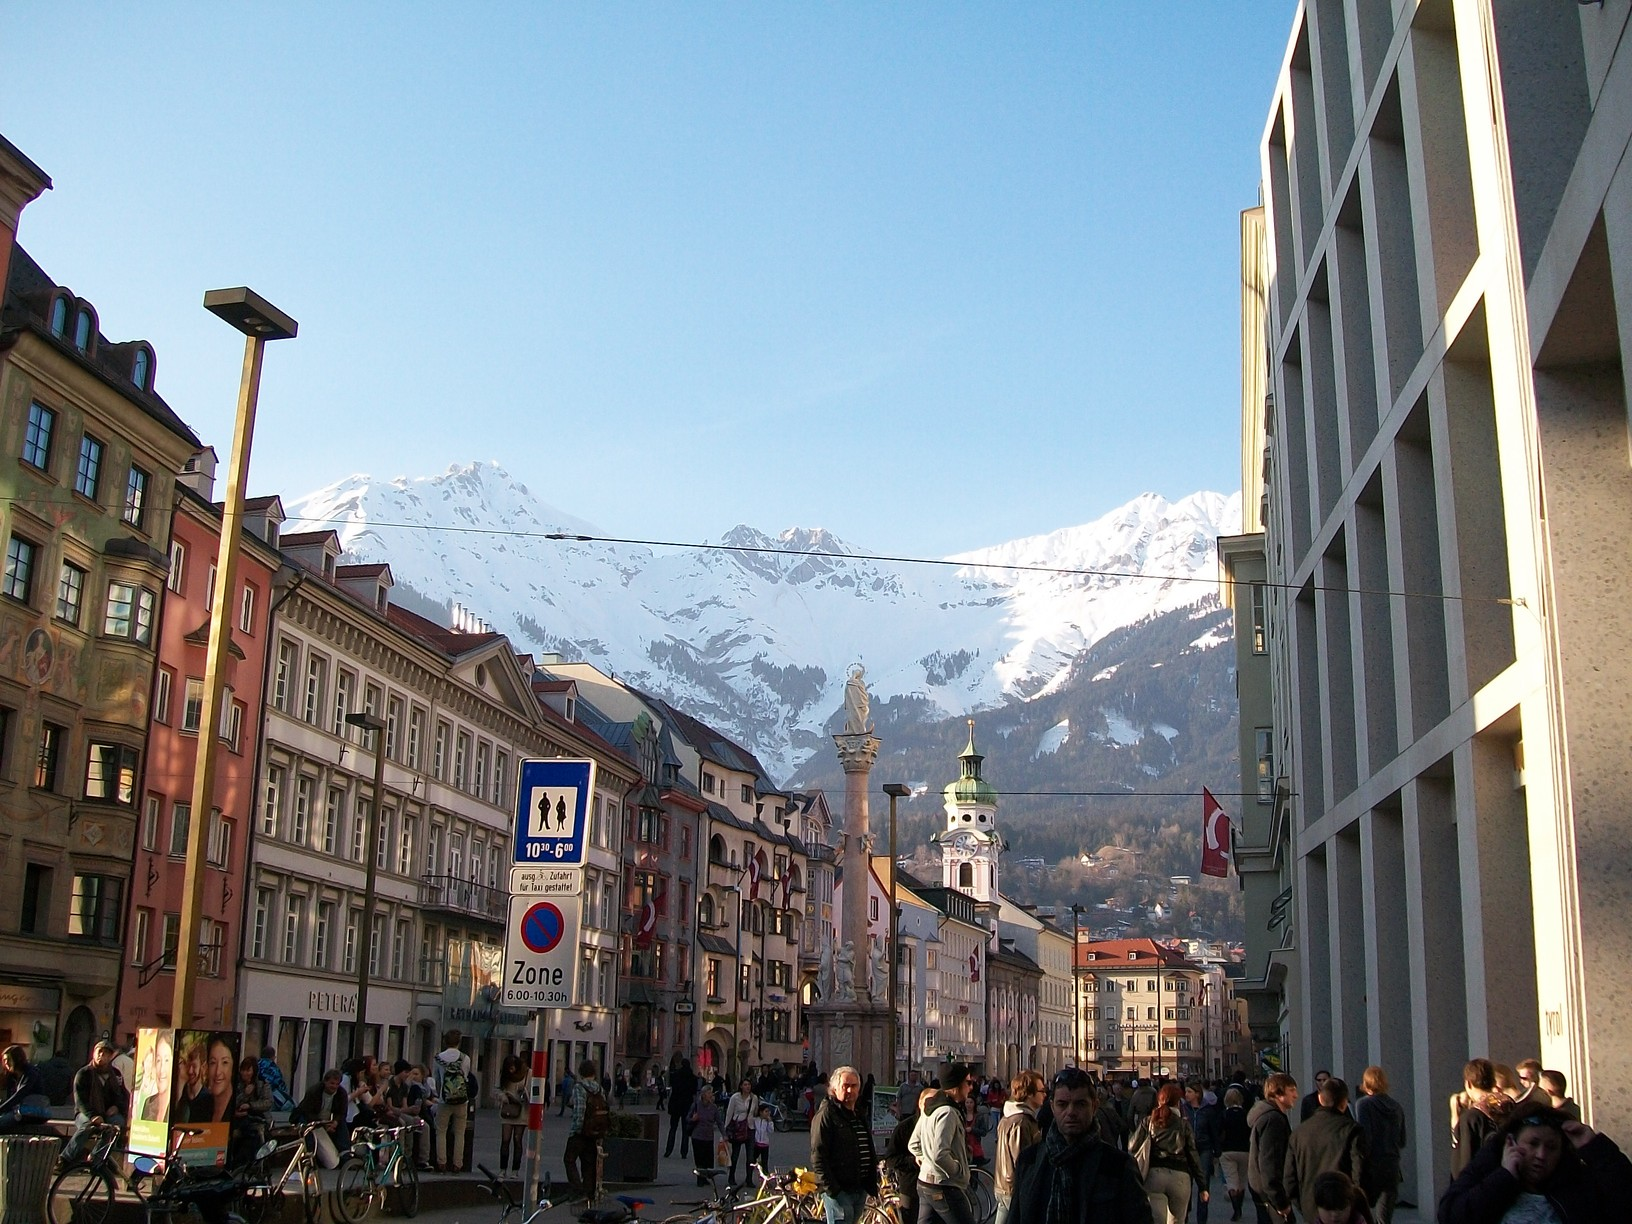 The statue of Jesus in Innsbruck seems to be staring at the massive snowy mountains surrounding Innsbruck. Look at how many people there are outside in the city.